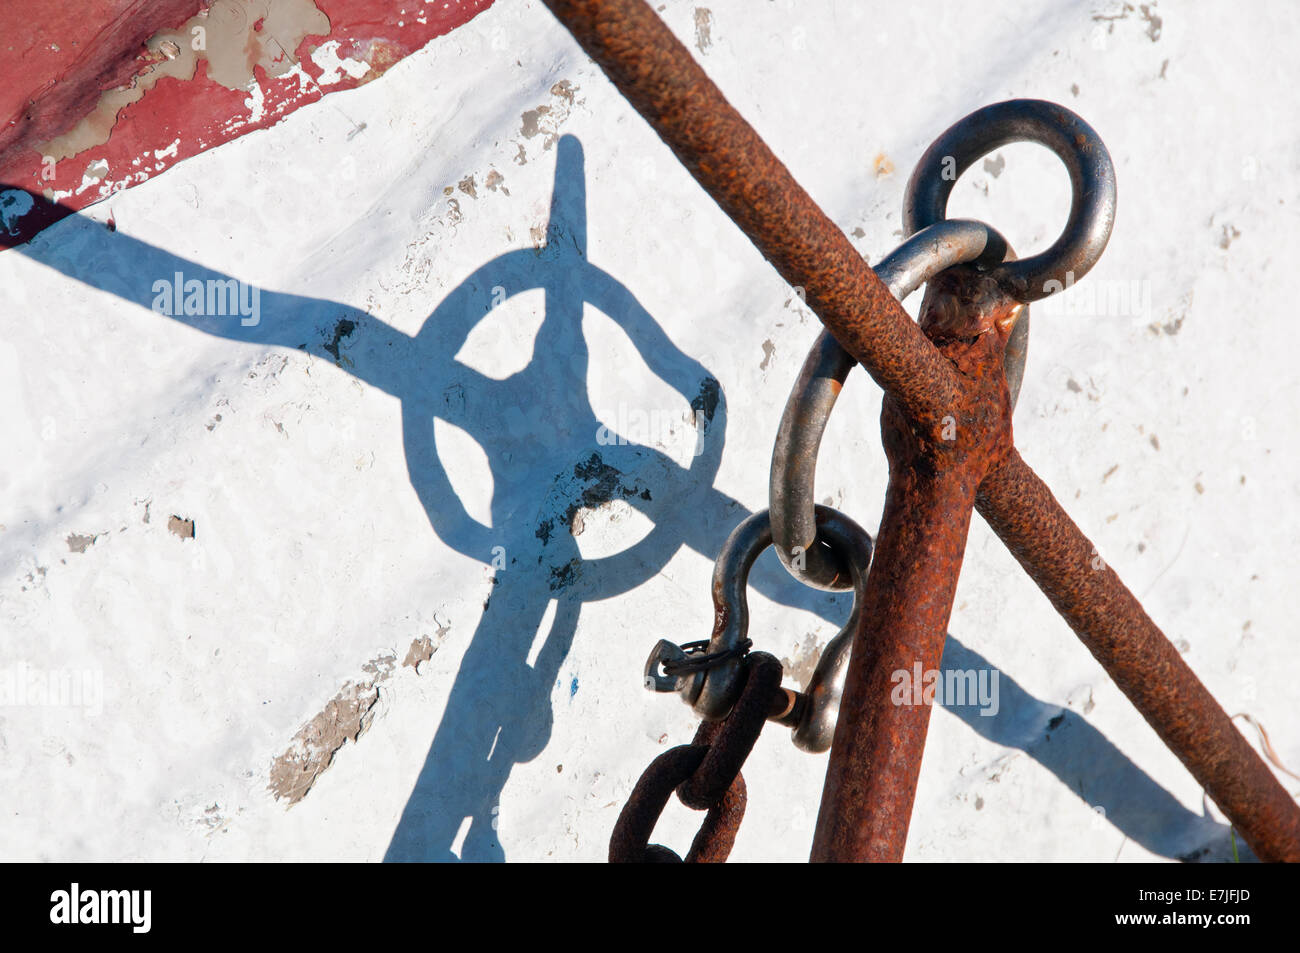 Rusted Anchor & Coble Boat Hull Cameo, Lindisfarne or Holy Island, Northumberland, England, UK - Stock Image